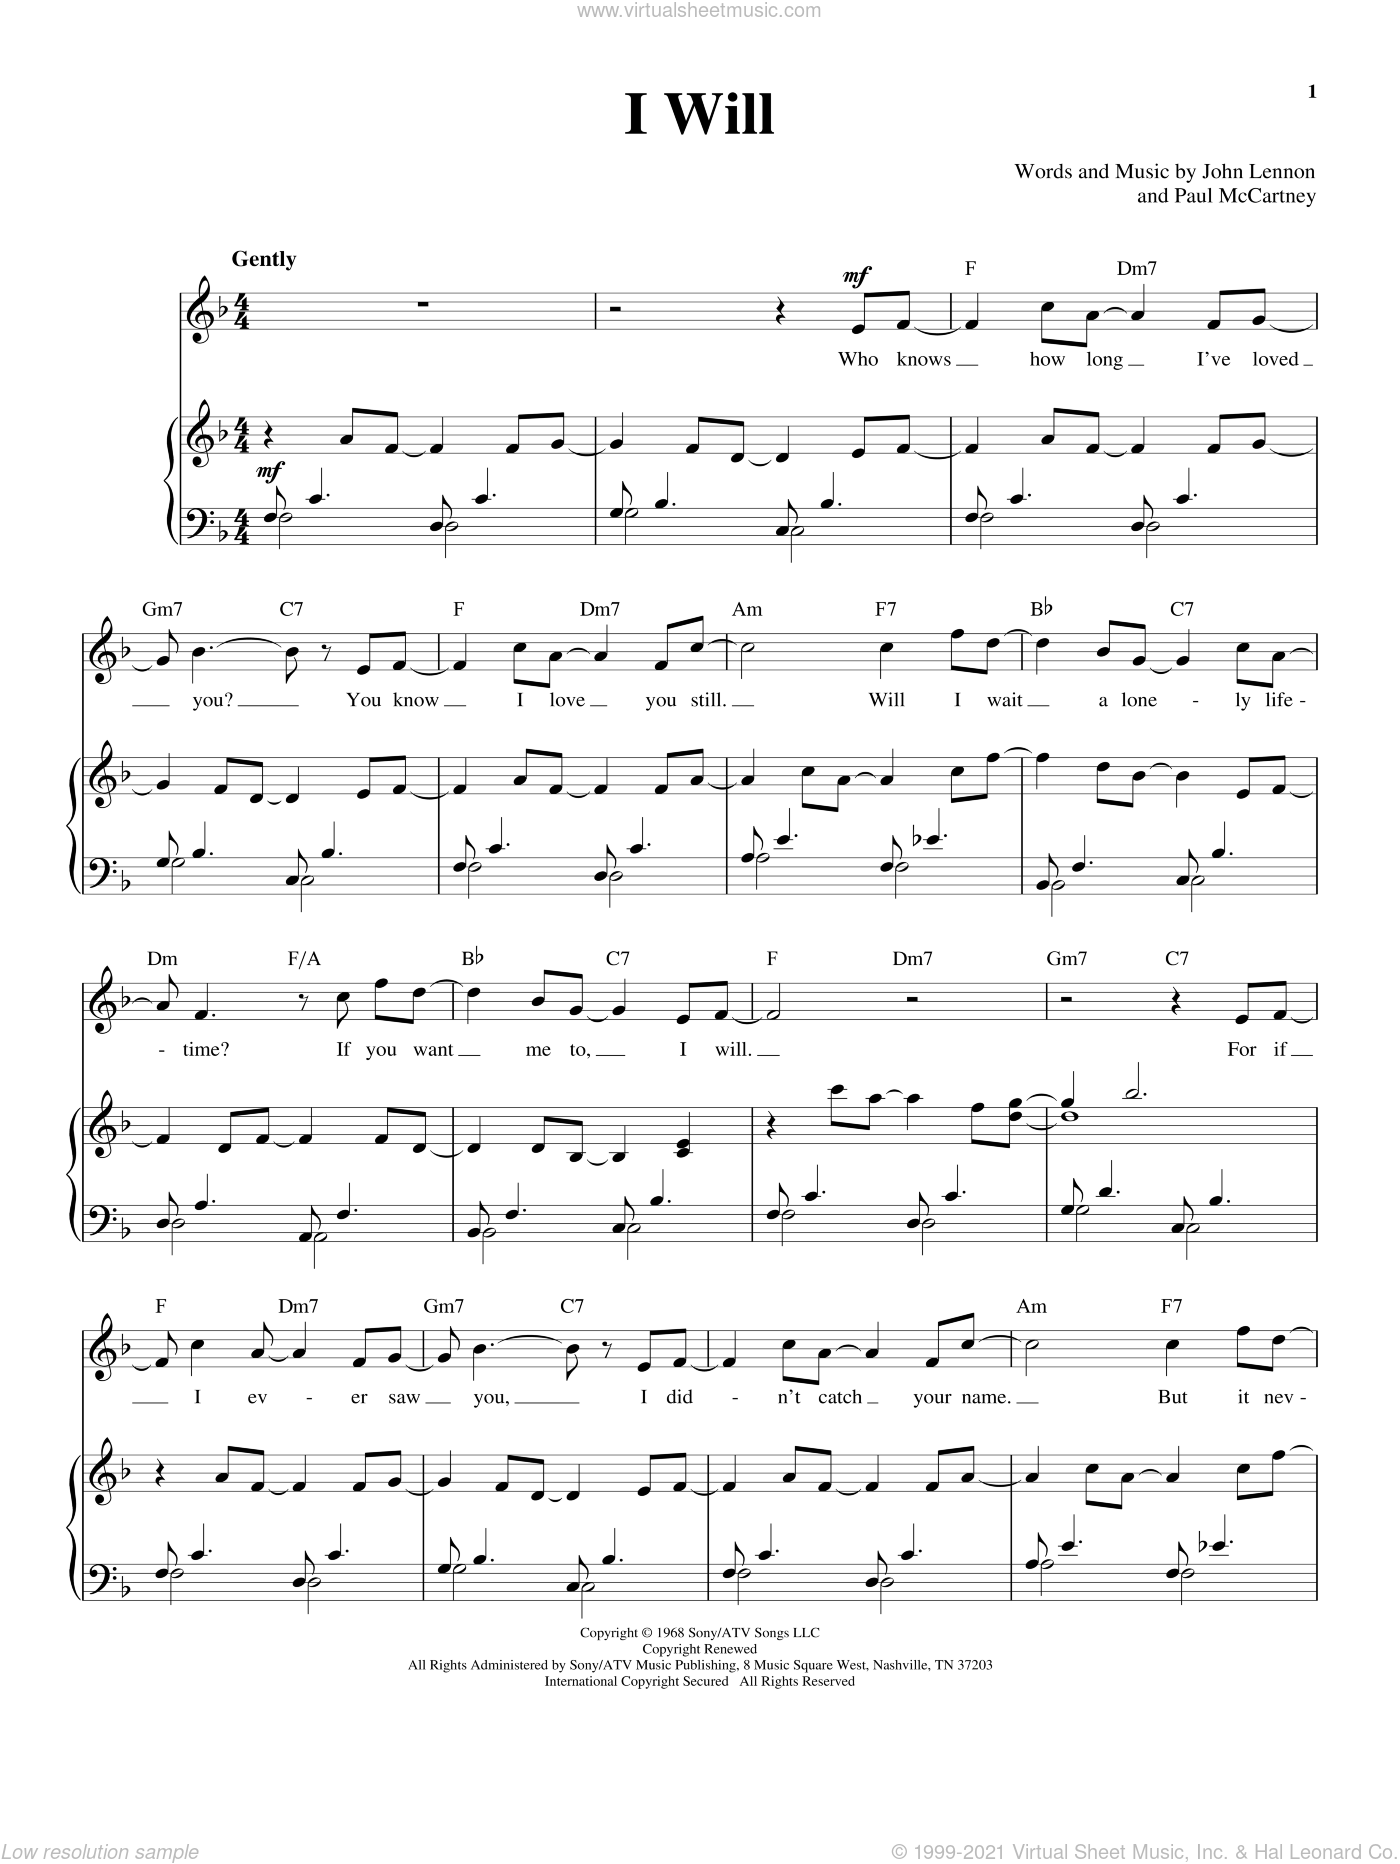 I Will sheet music for voice and piano by The Beatles, John Lennon and Paul McCartney, wedding score, intermediate skill level